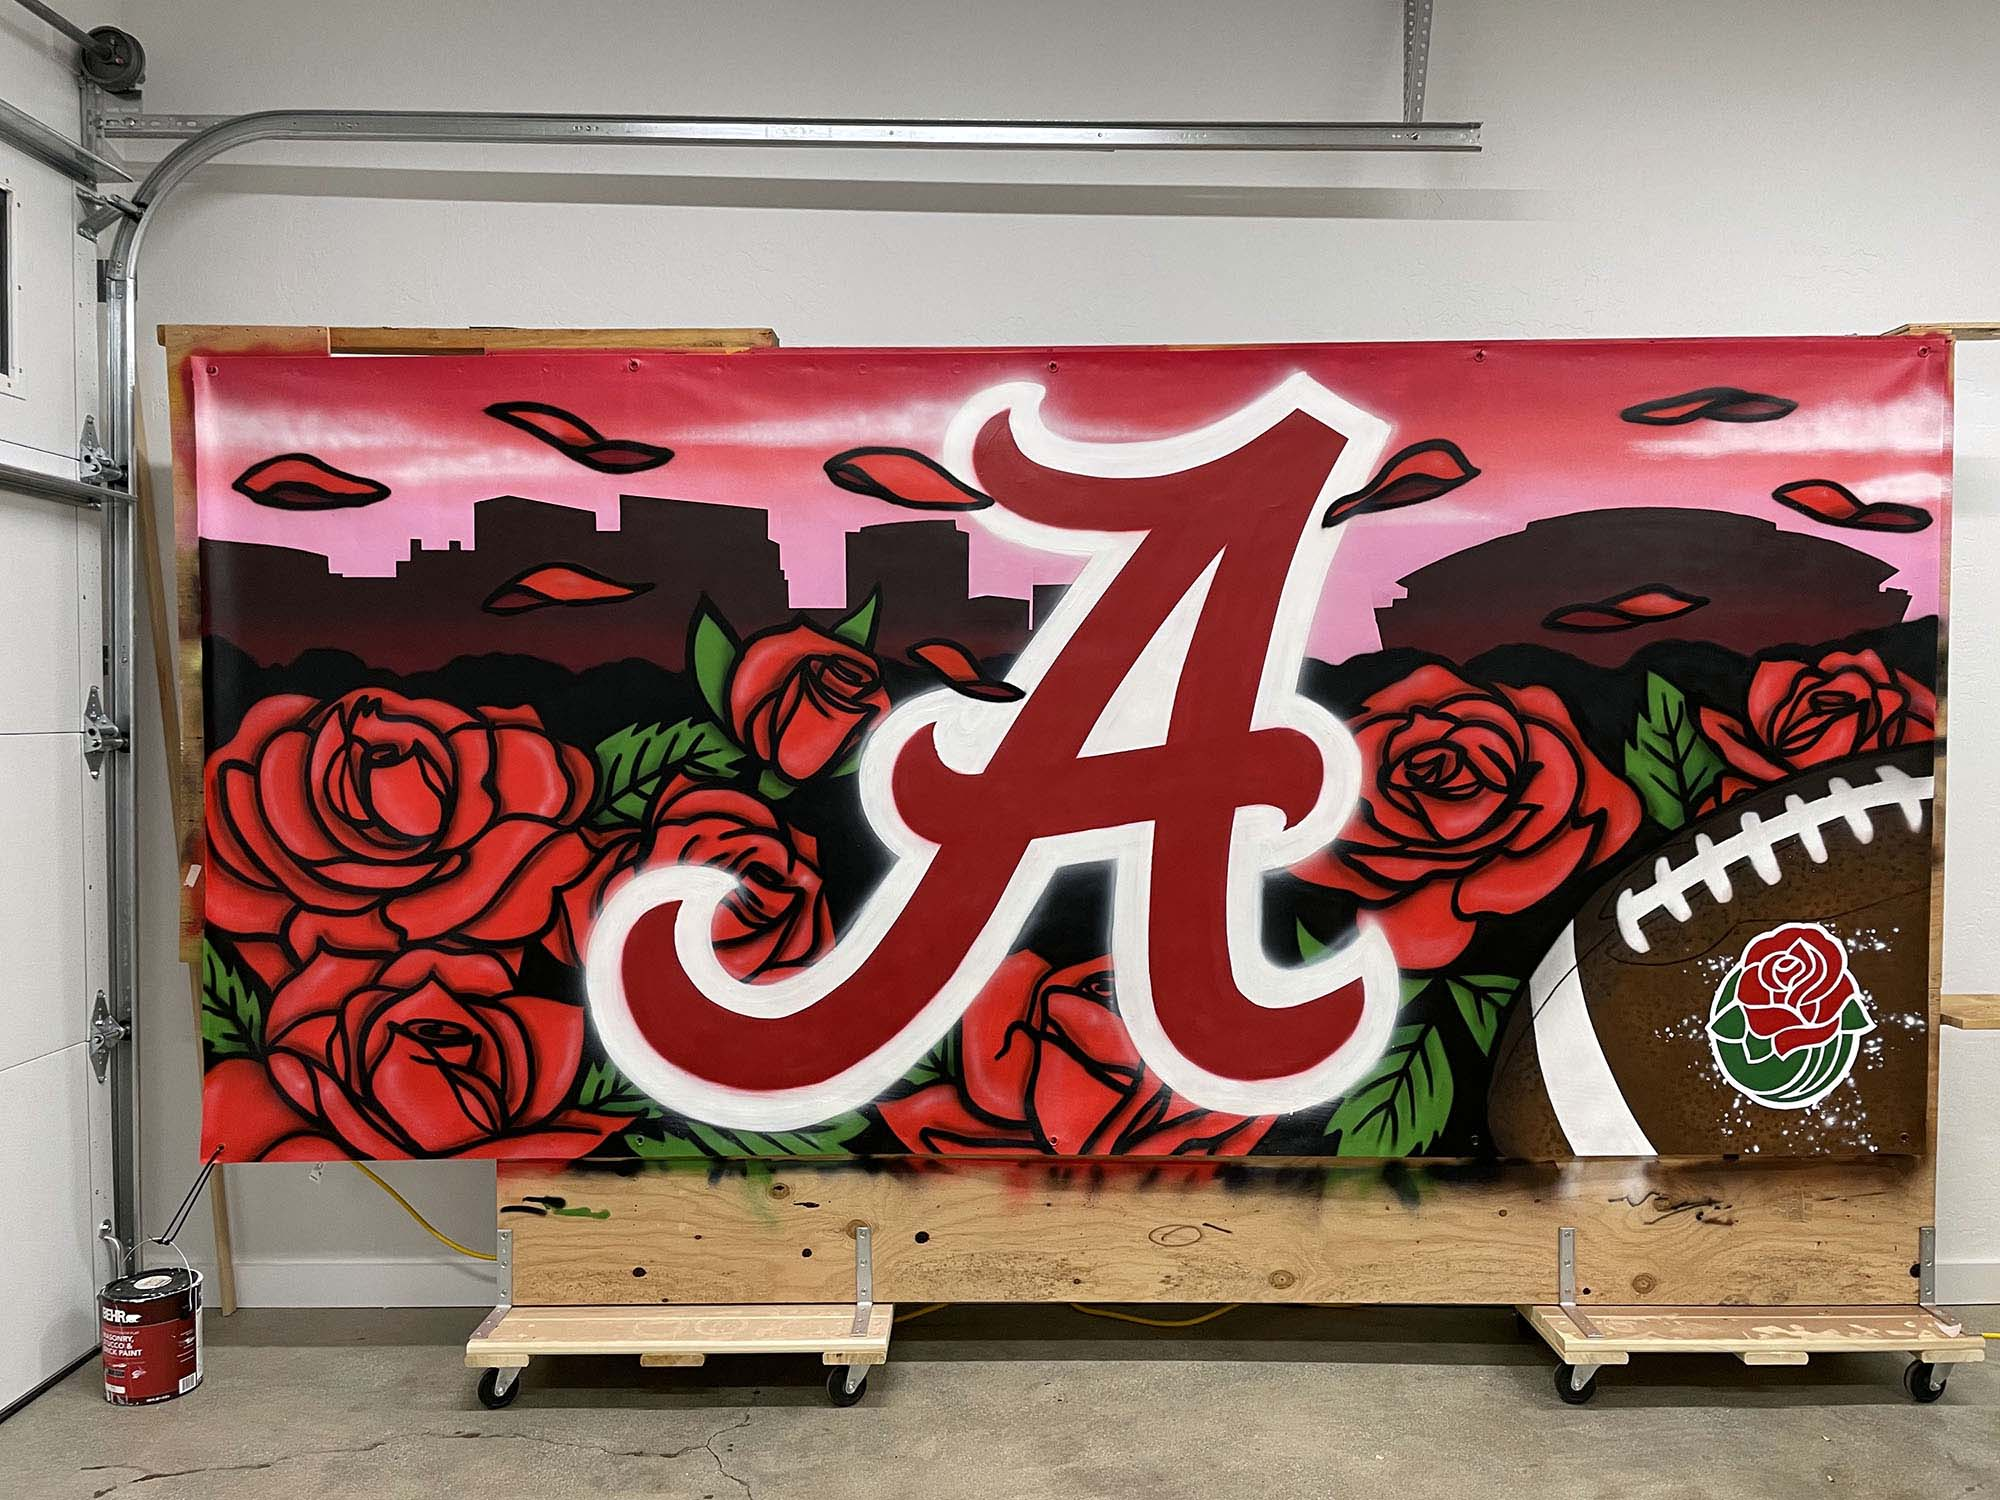 Alabama Rose Bowl 2020 - Pasadena Artist